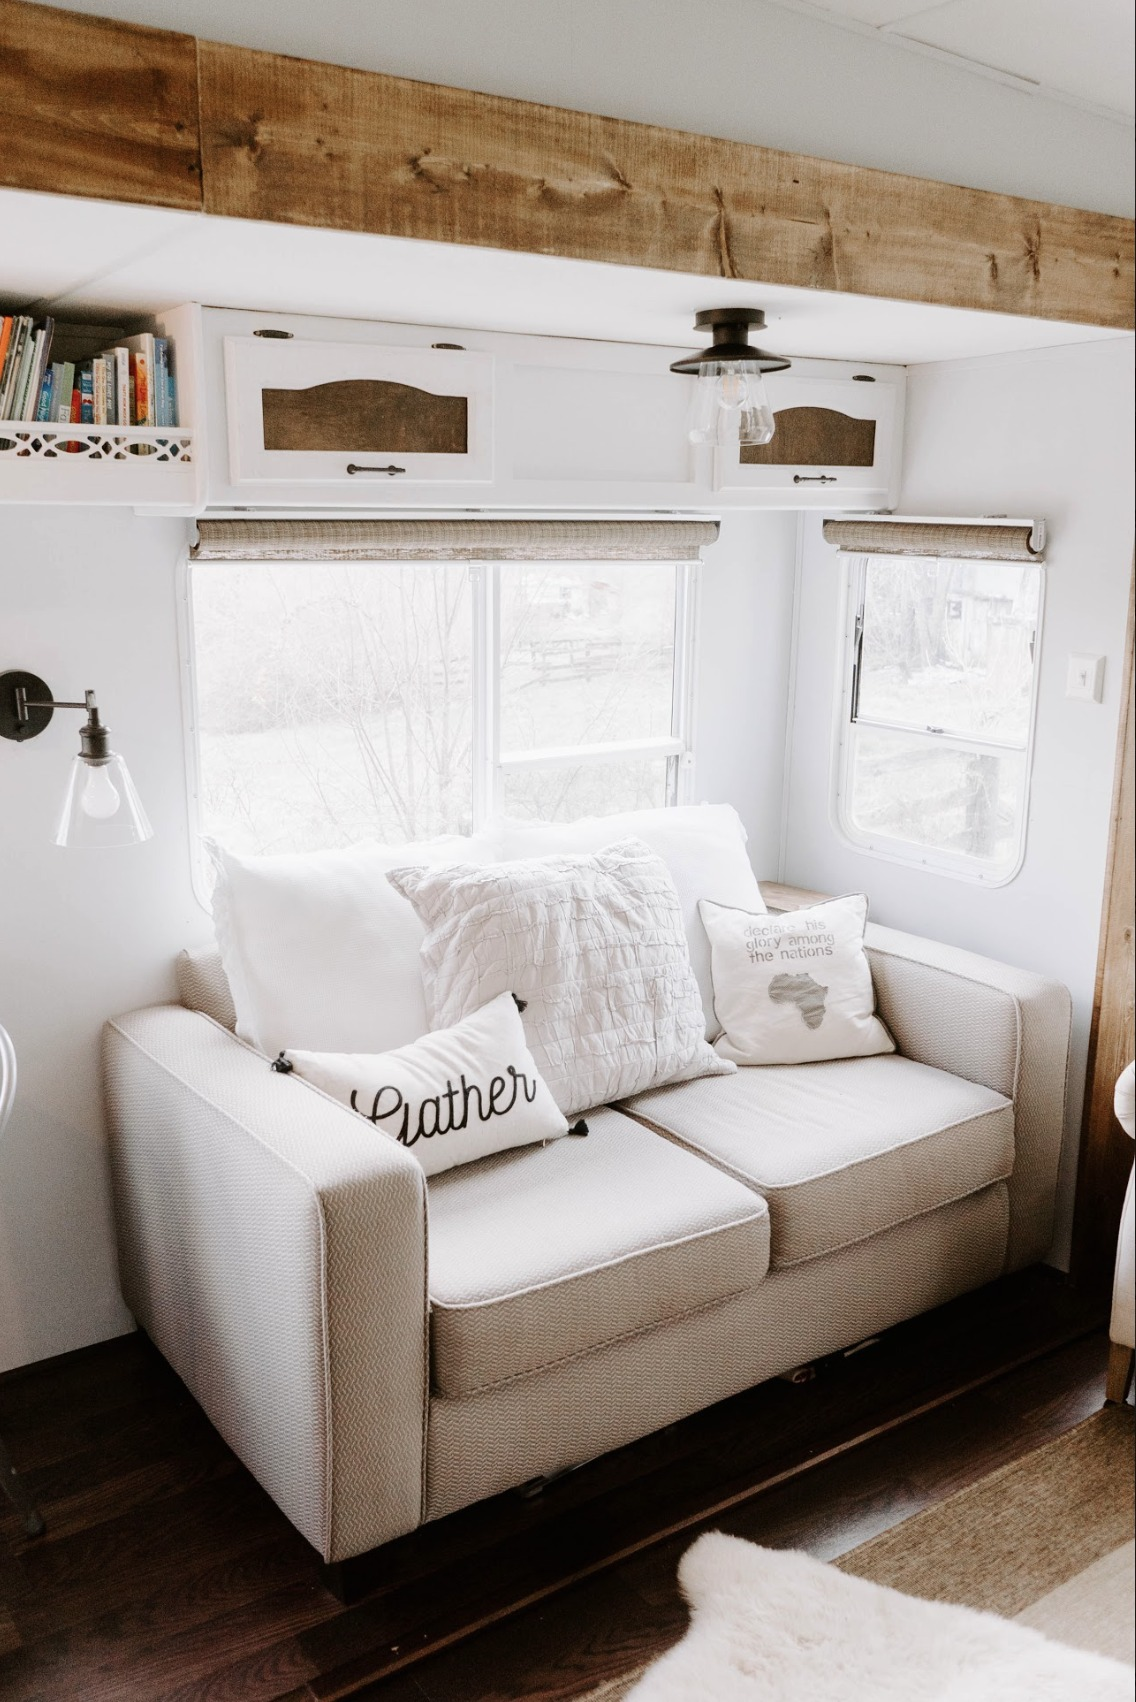 Small Space Living Feature You Wont Believe This Rv Nesting